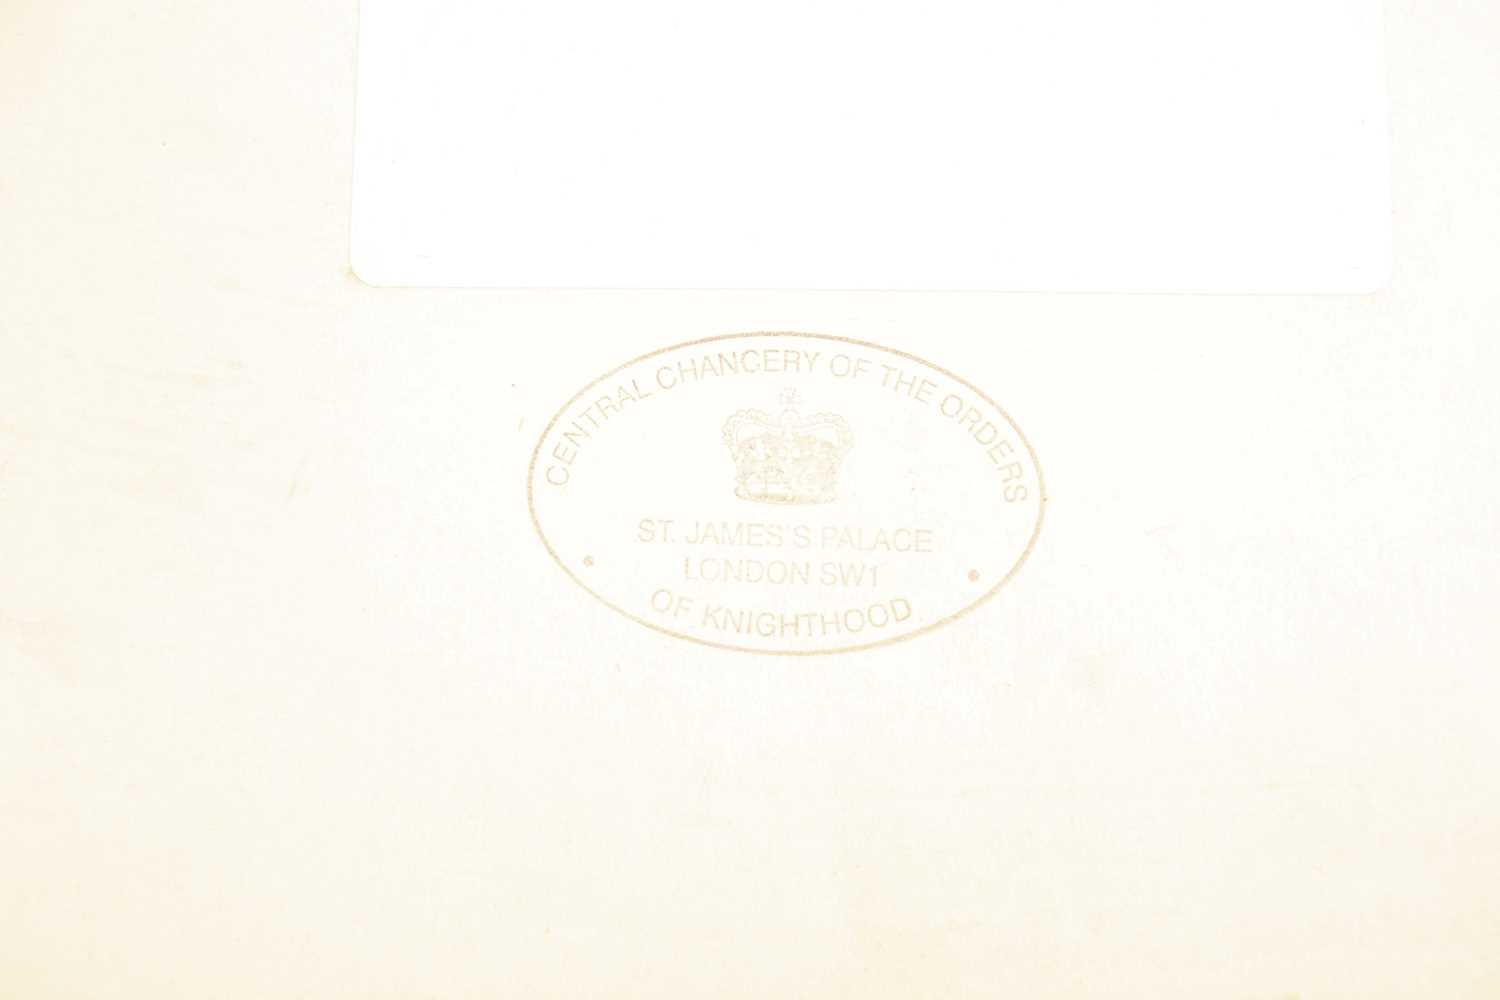 An M.B.E certificate to Keith Leslie Tucker (M.B.E) signed (printed signatures) by her majesty Queen - Image 5 of 10